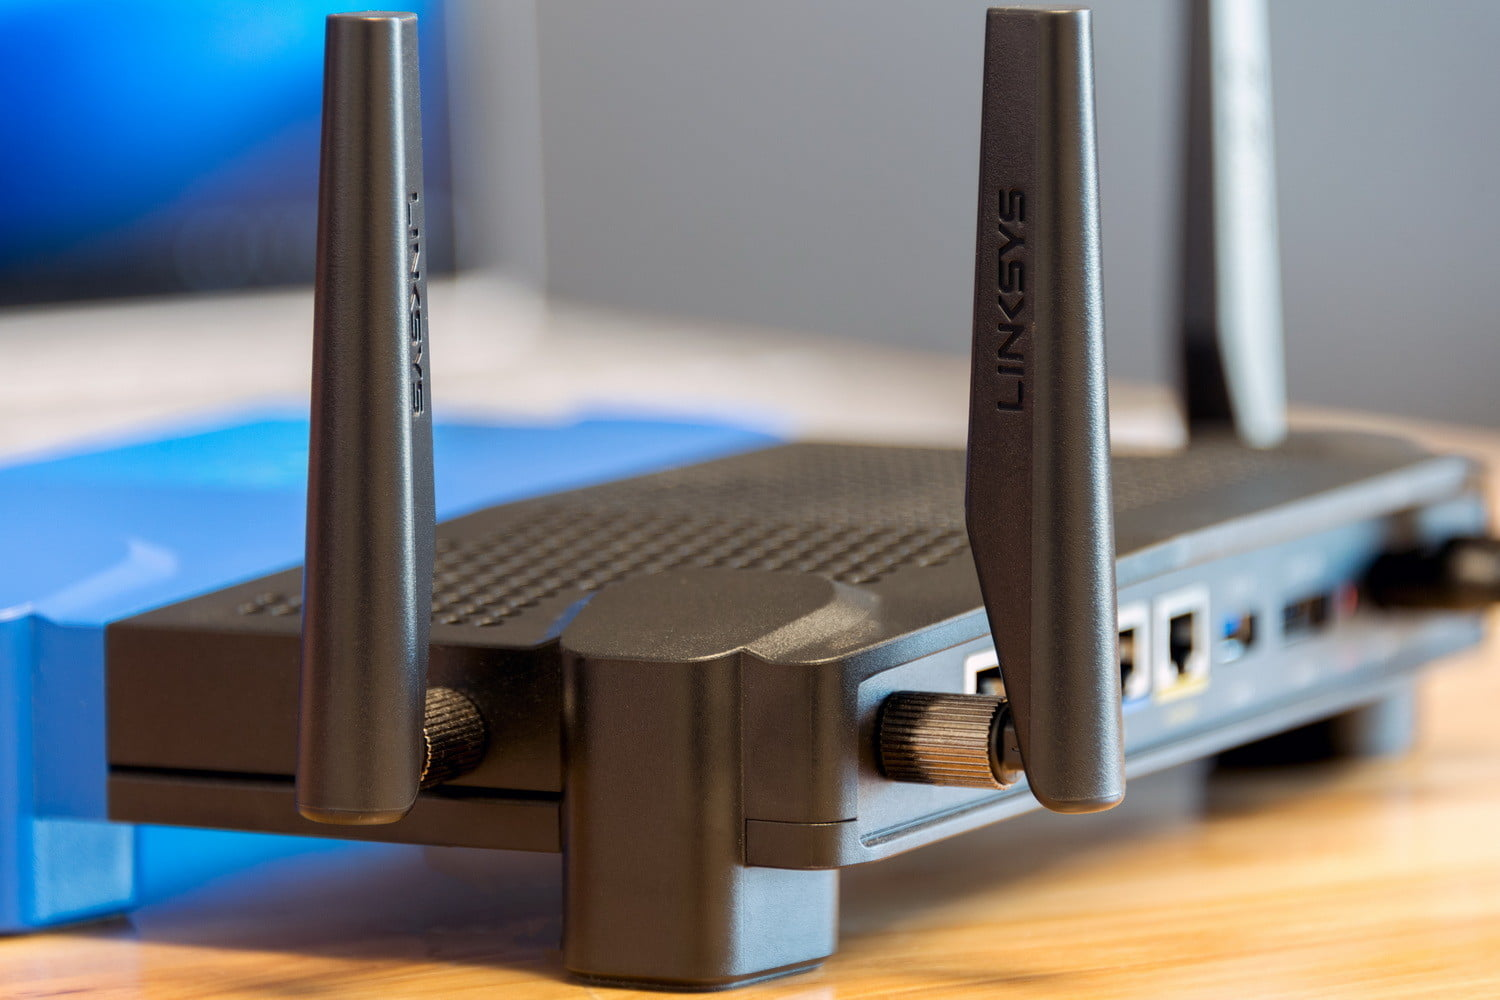 How To Boost Wi Fi Speeds At Home By Moving Your Router Digital Trends Wood Wiring Diagram The Linksys Wrt3200 Acm Review